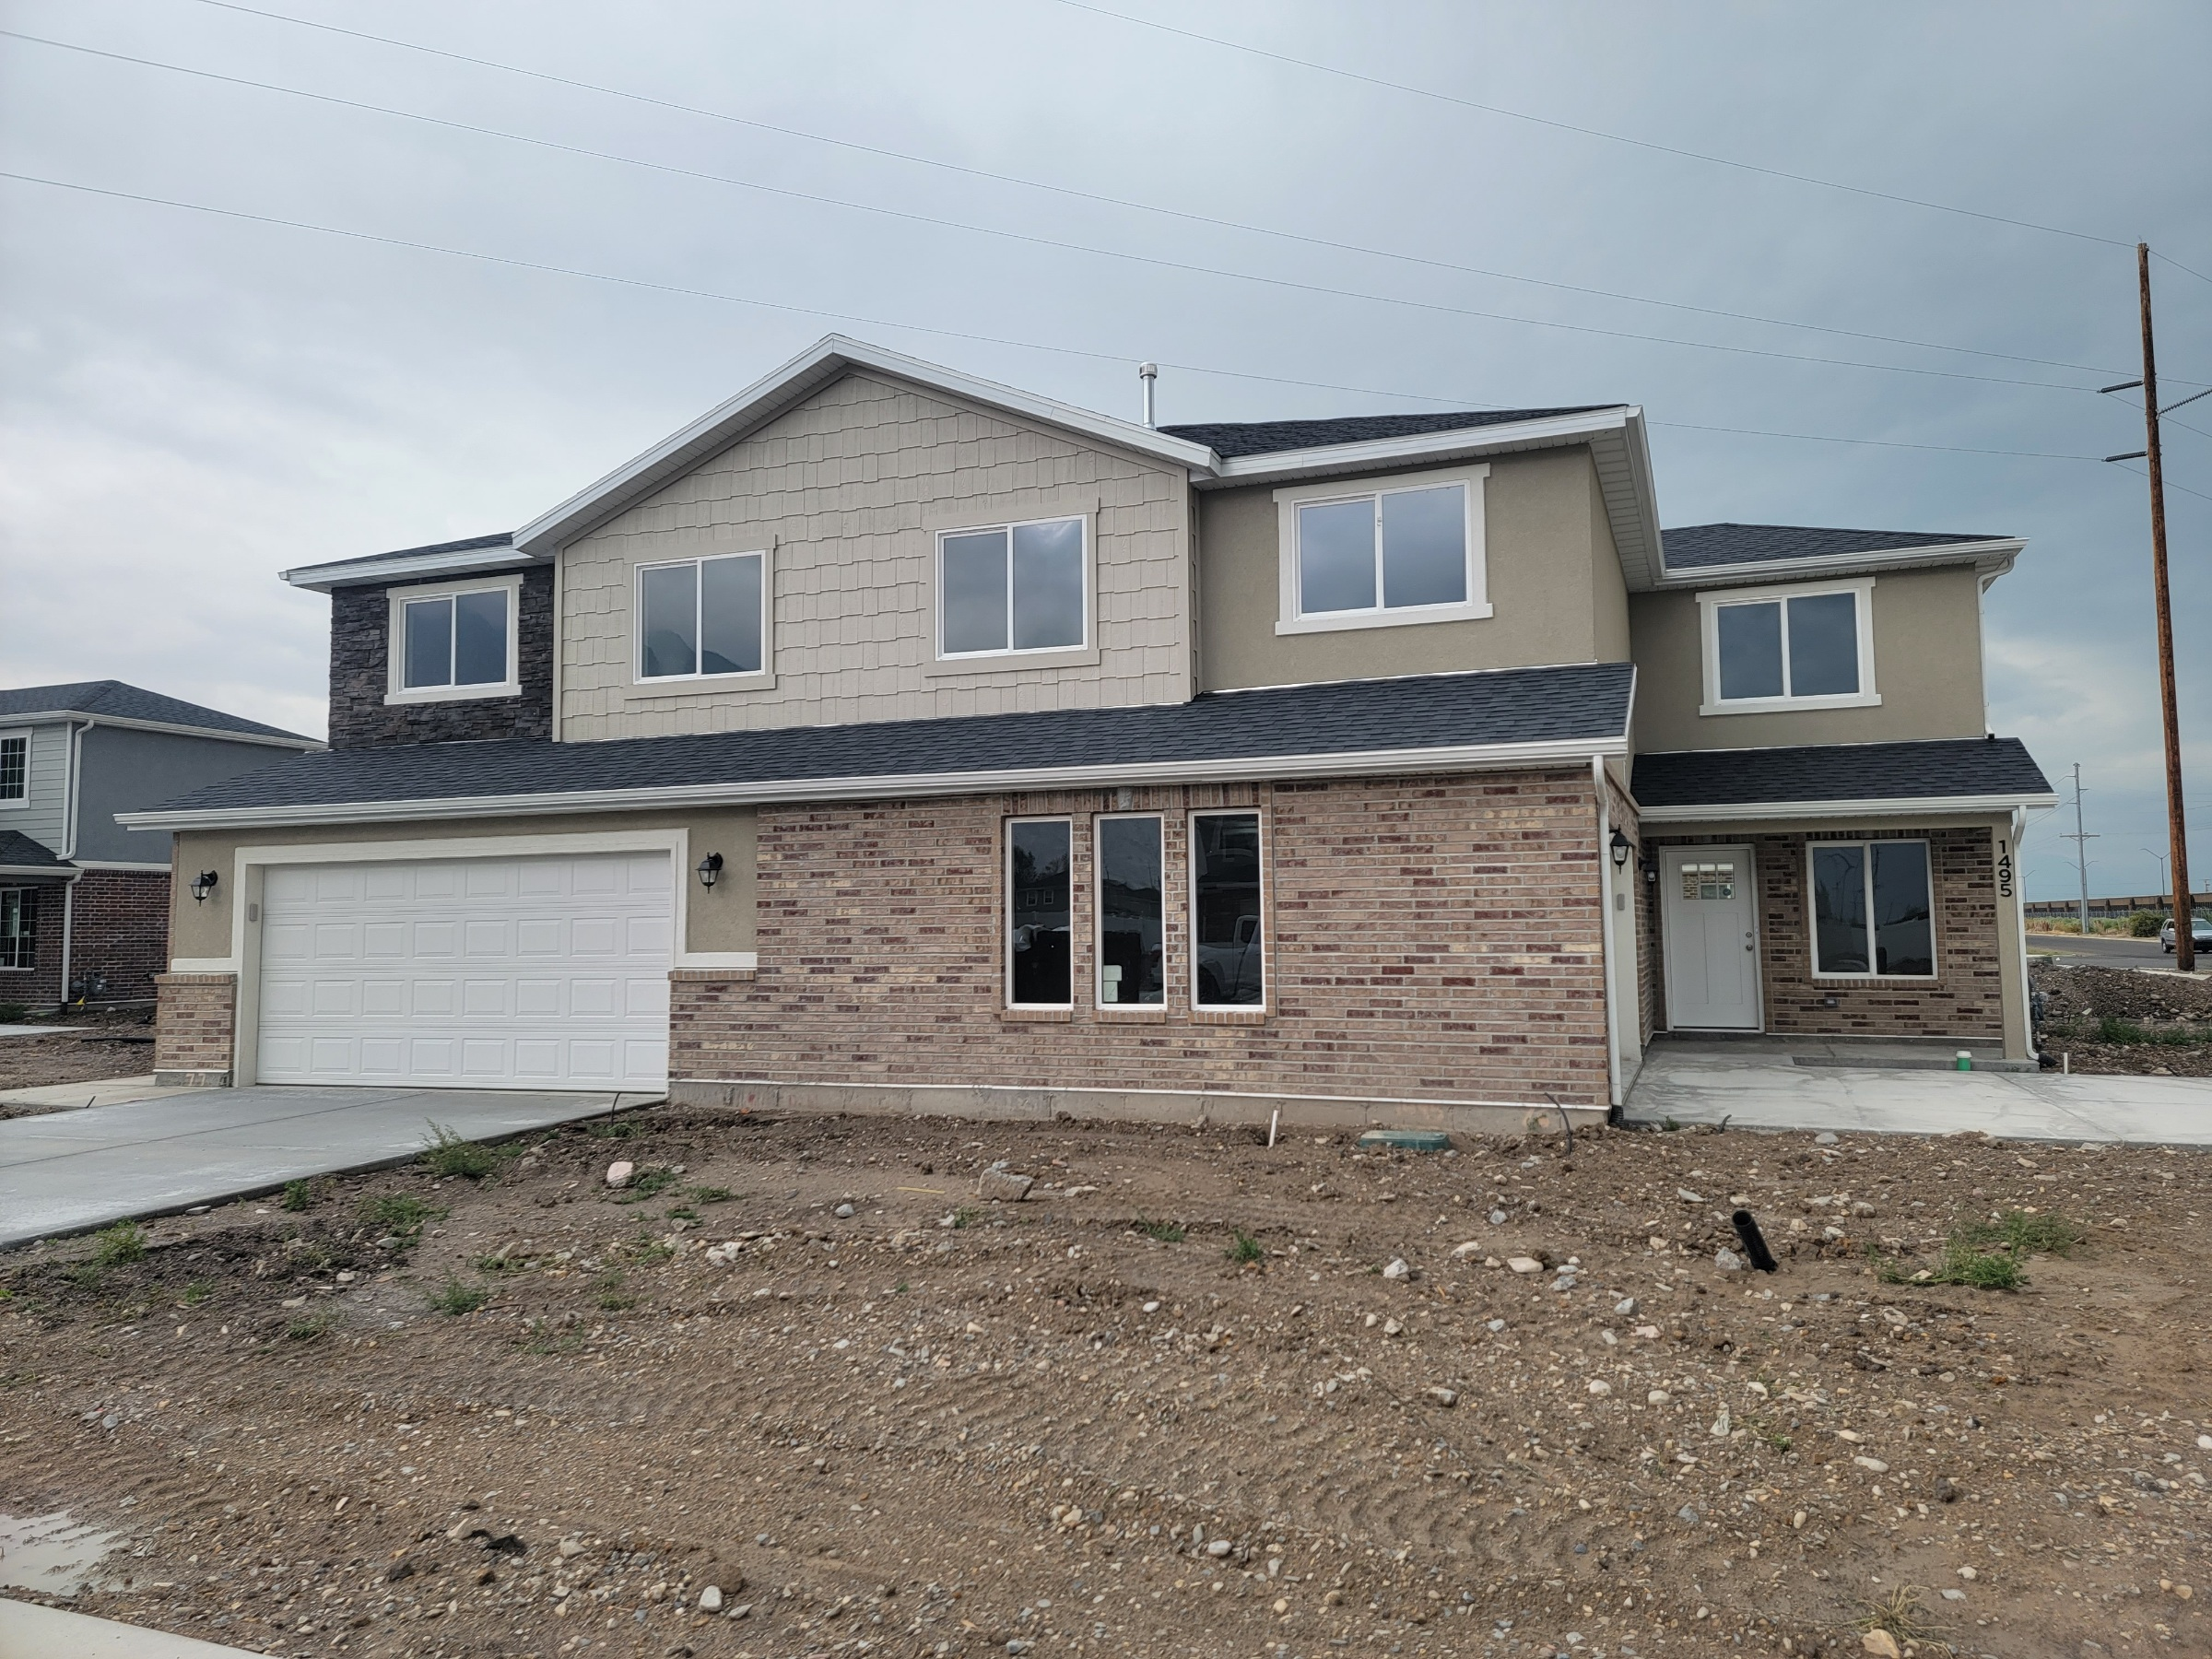 Quail Valley Twin Homes Lot 76 – Springville